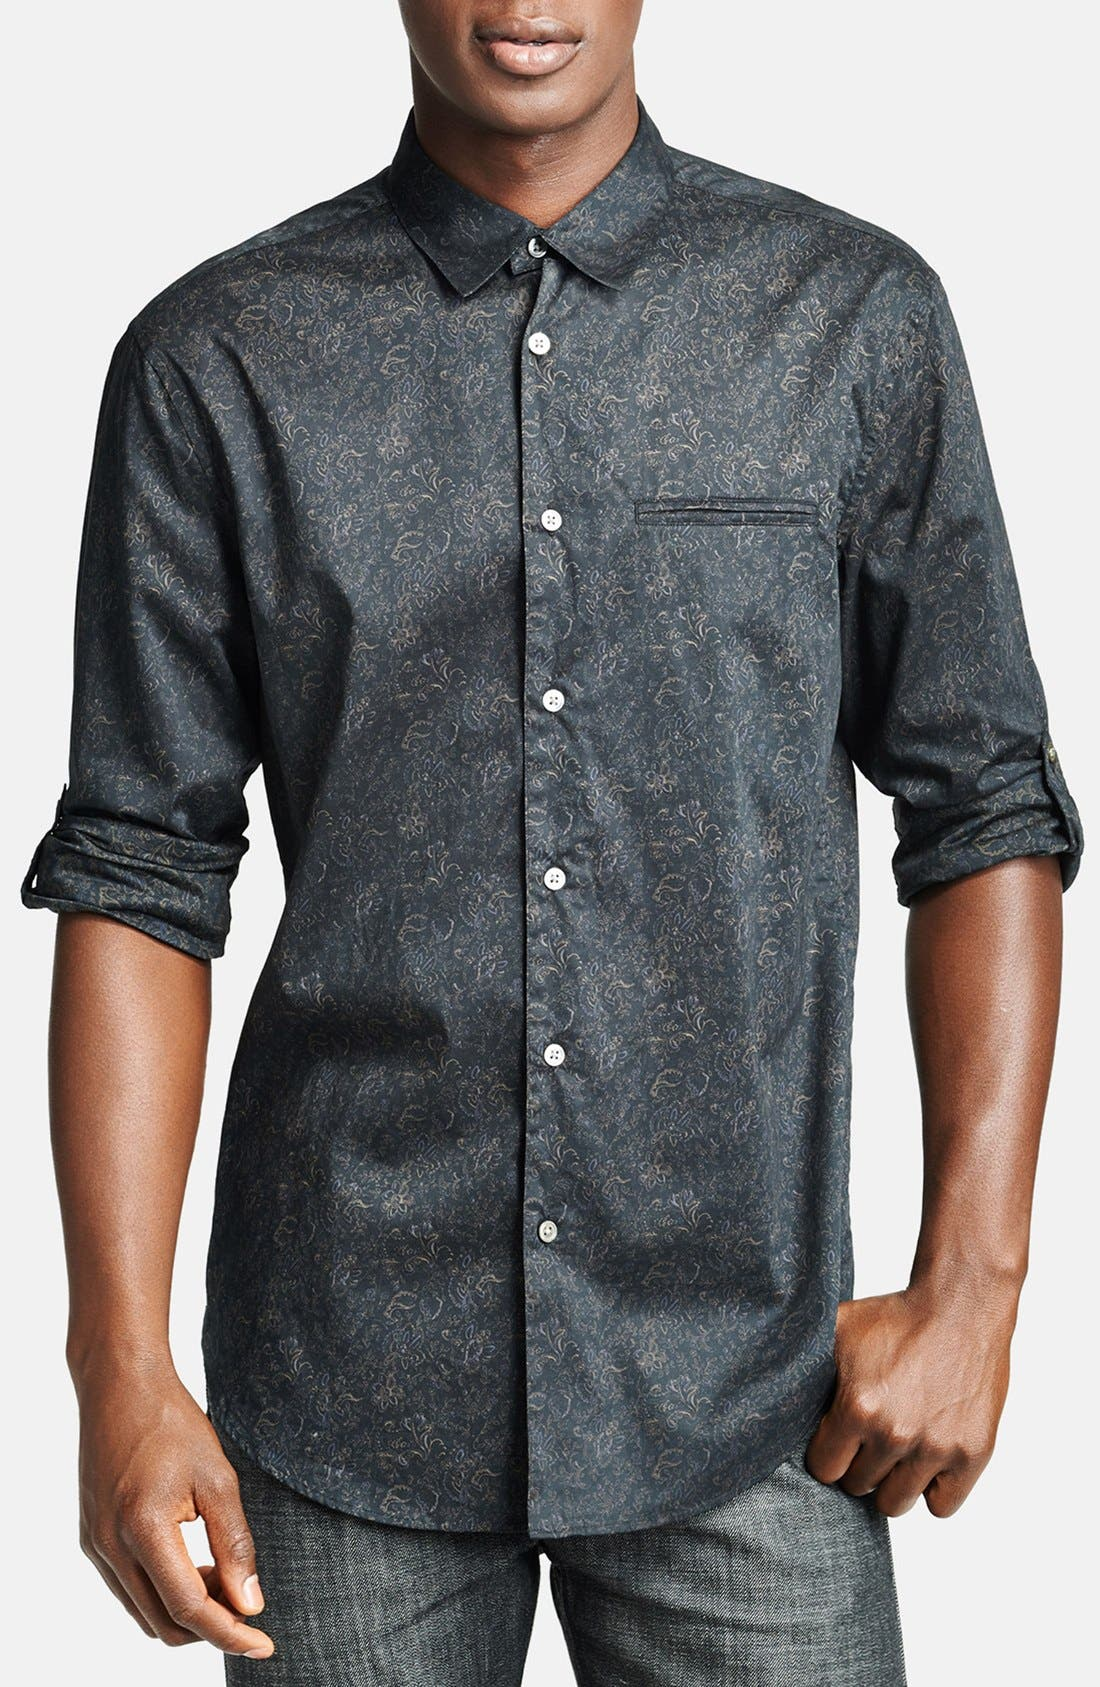 Alternate Image 1 Selected - John Varvatos Collection Slim Fit Floral Print Cotton Shirt with Button Tab Sleeves